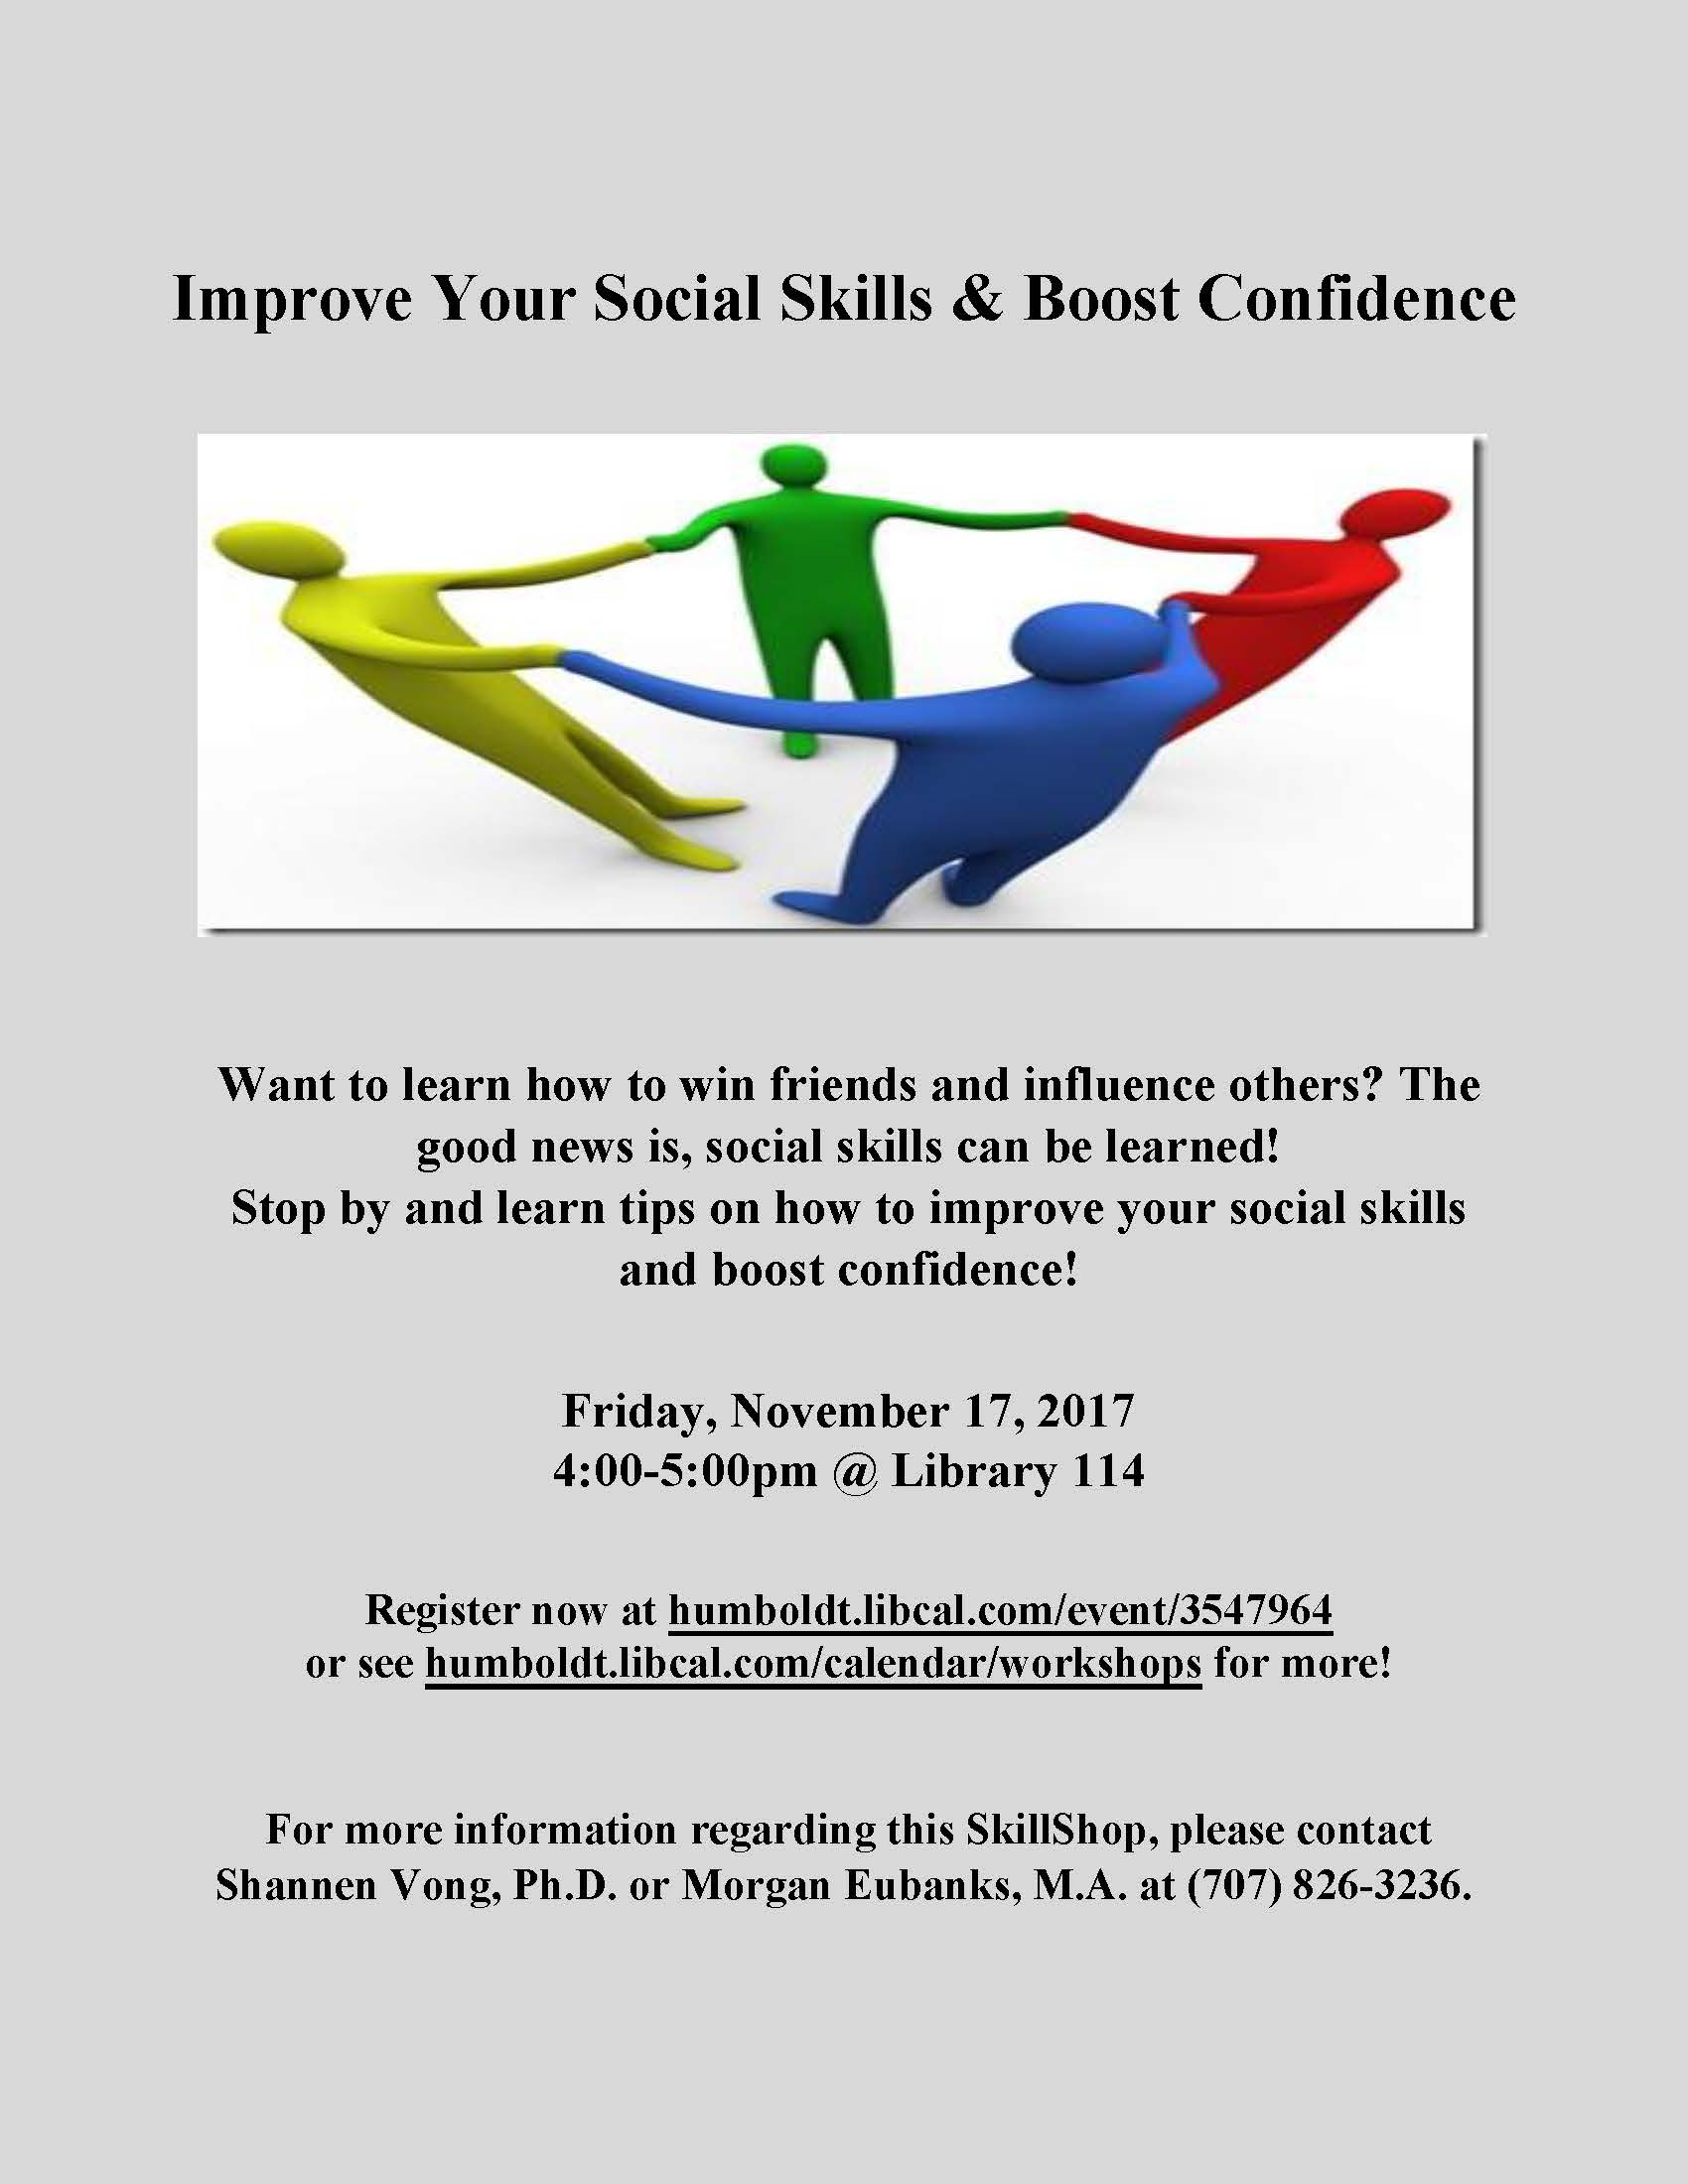 Improve Your Social Skills & Boost Confidence